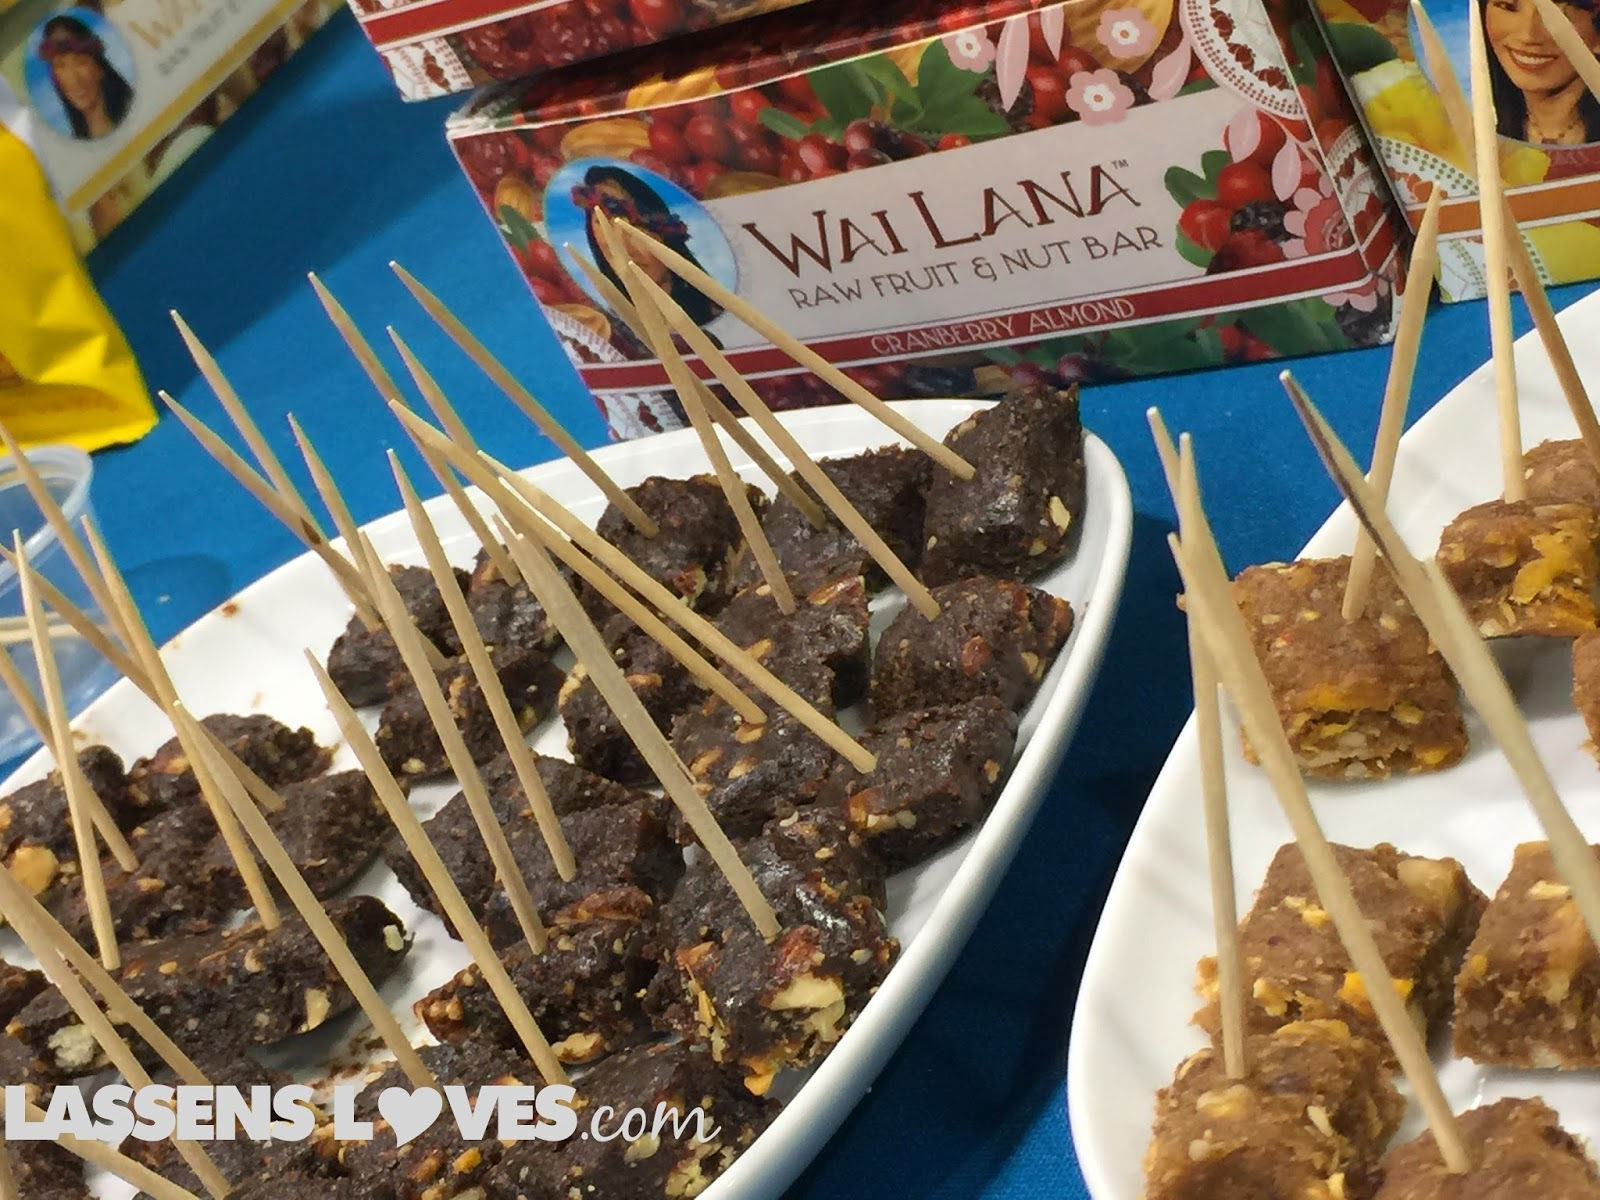 Expo+West+2015, Natural+Foods+Show, New+Natural+Products, wai+lana, wai+lana+raw+bars, raw+bars